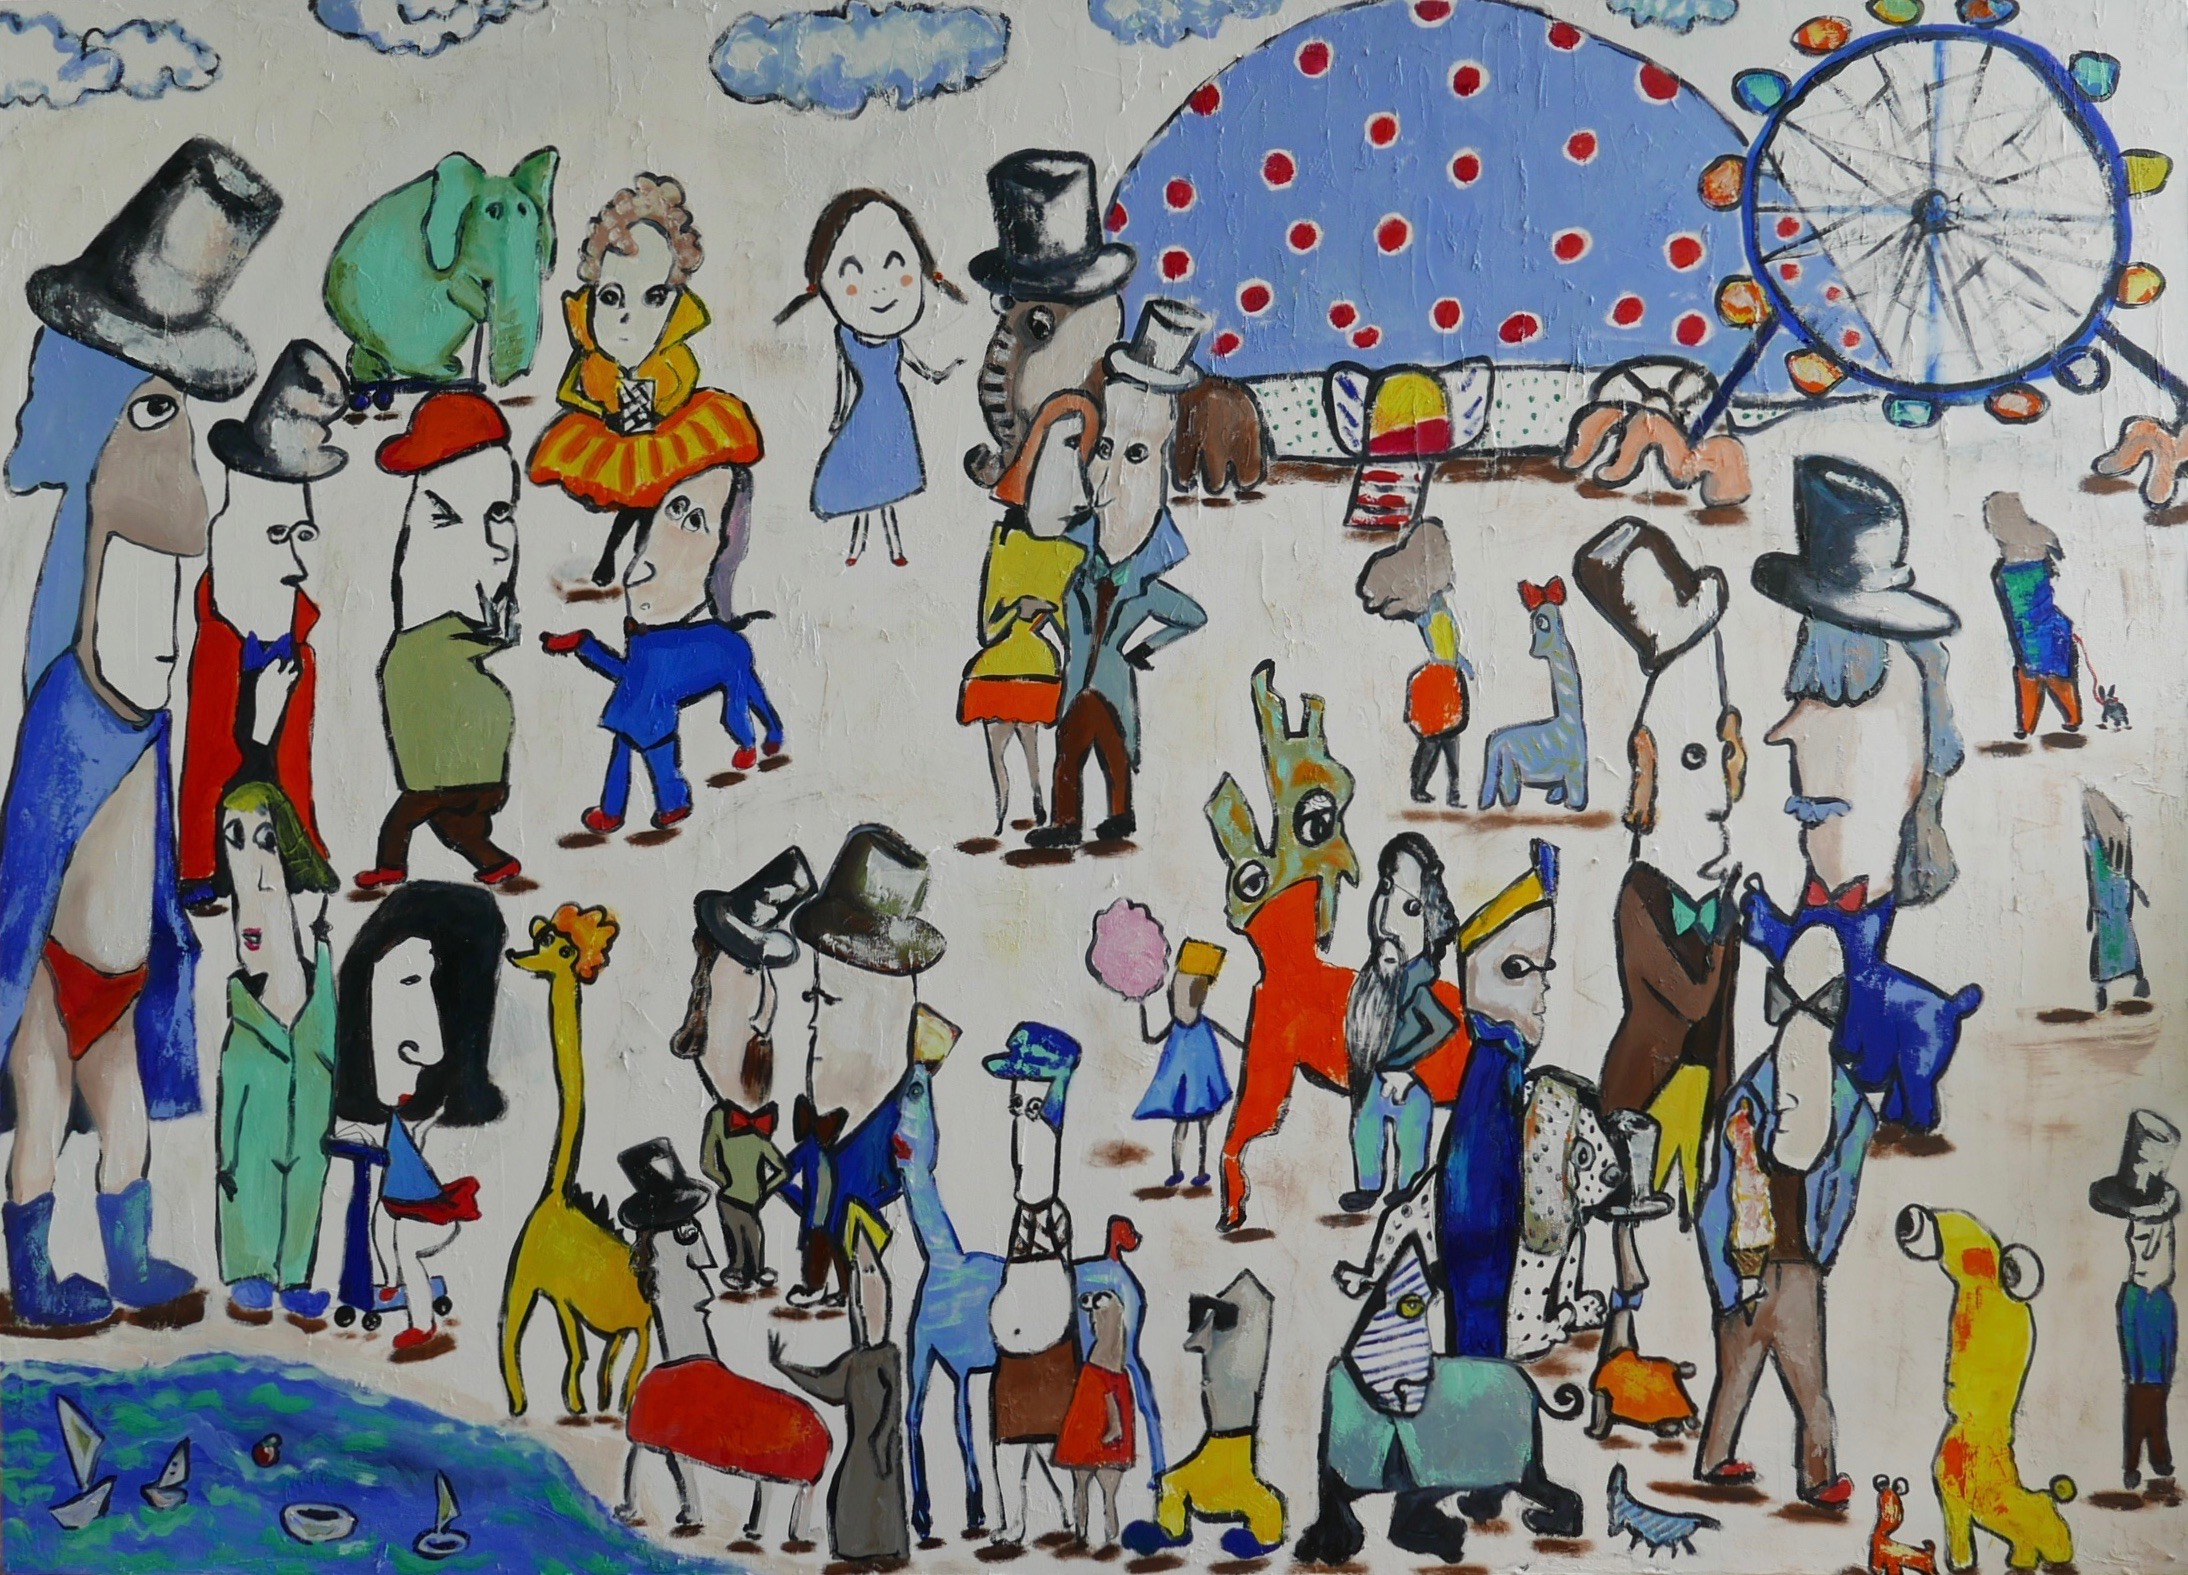 Elephant on skates with friends artwork by Ta Thimkaeo - art listed for sale on Artplode